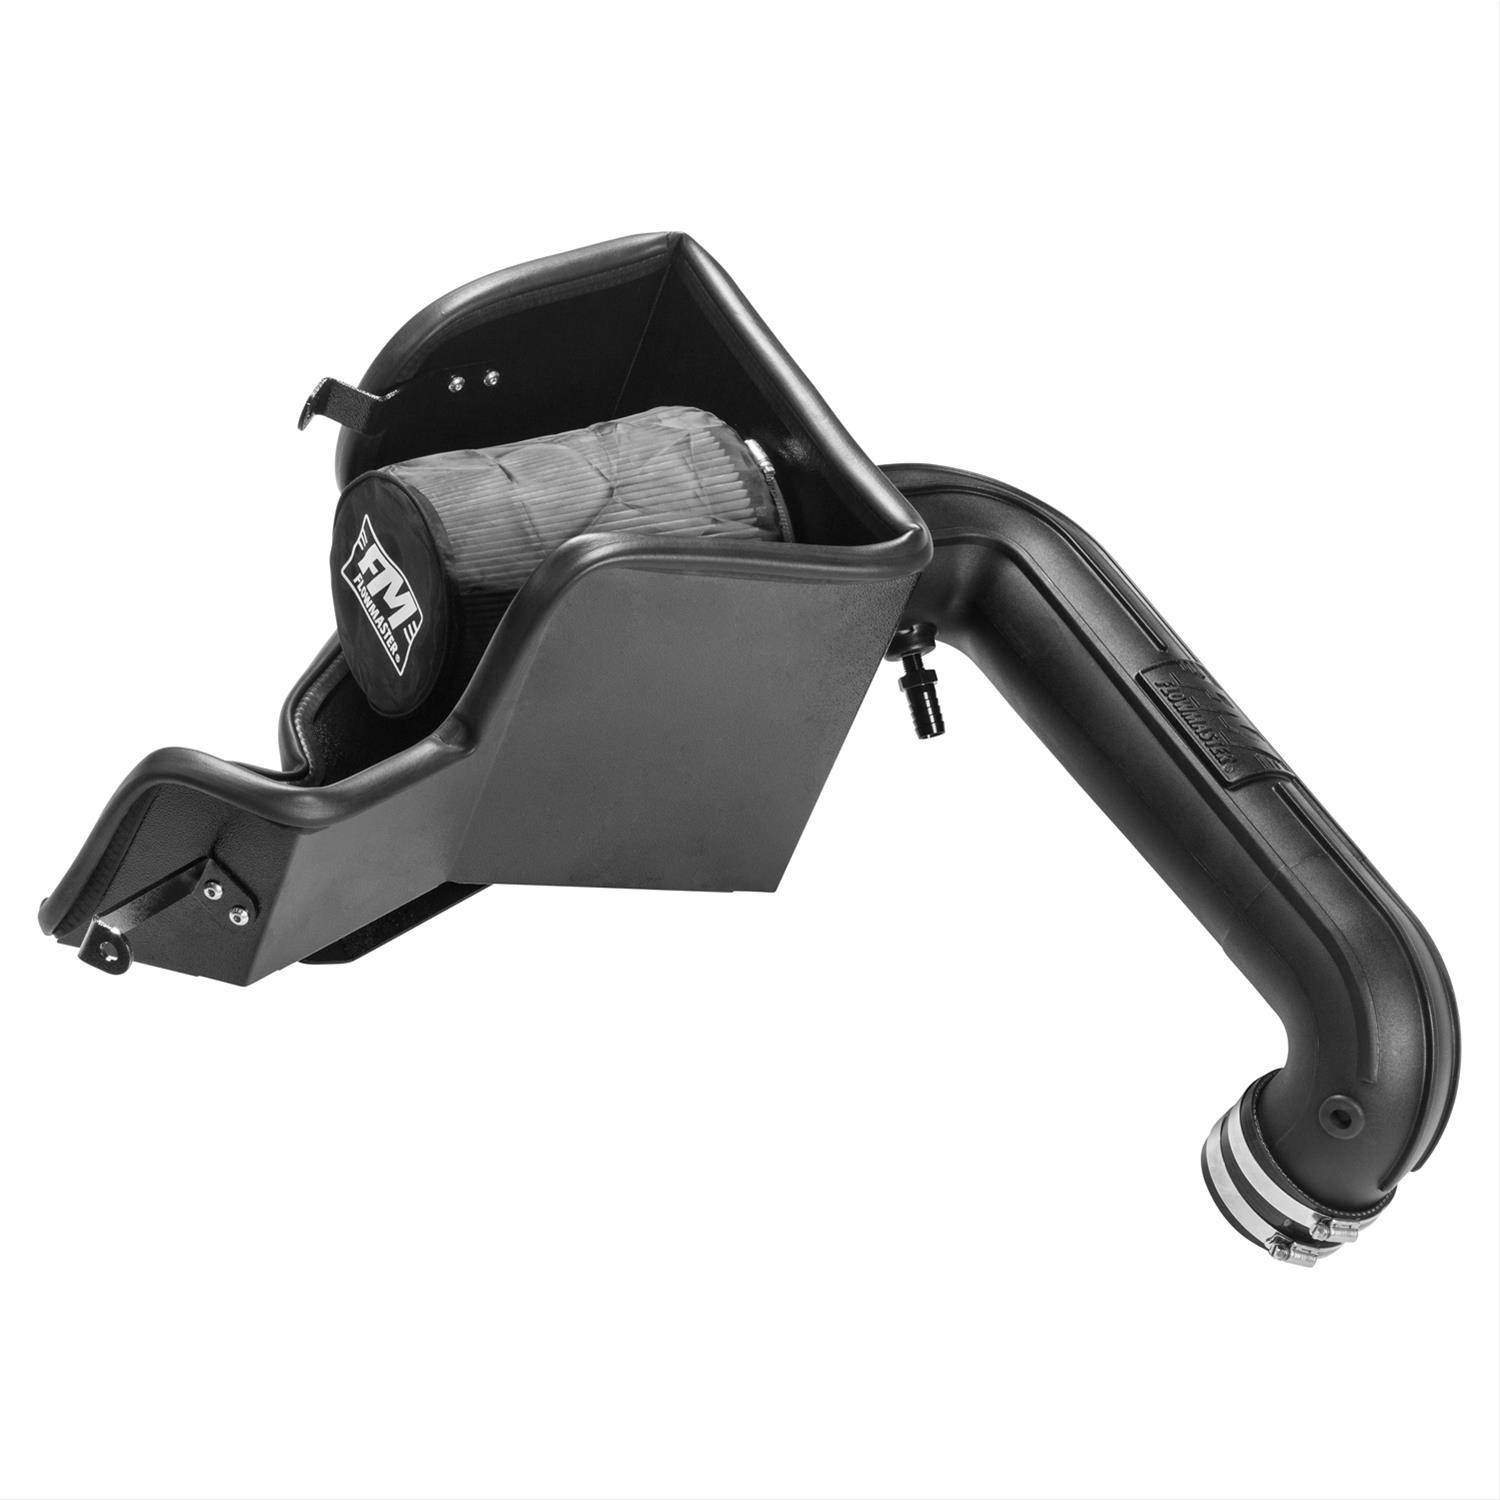 Flowmaster Delta Force Dry Air Intake 09-18 Dodge Ram 5.7L